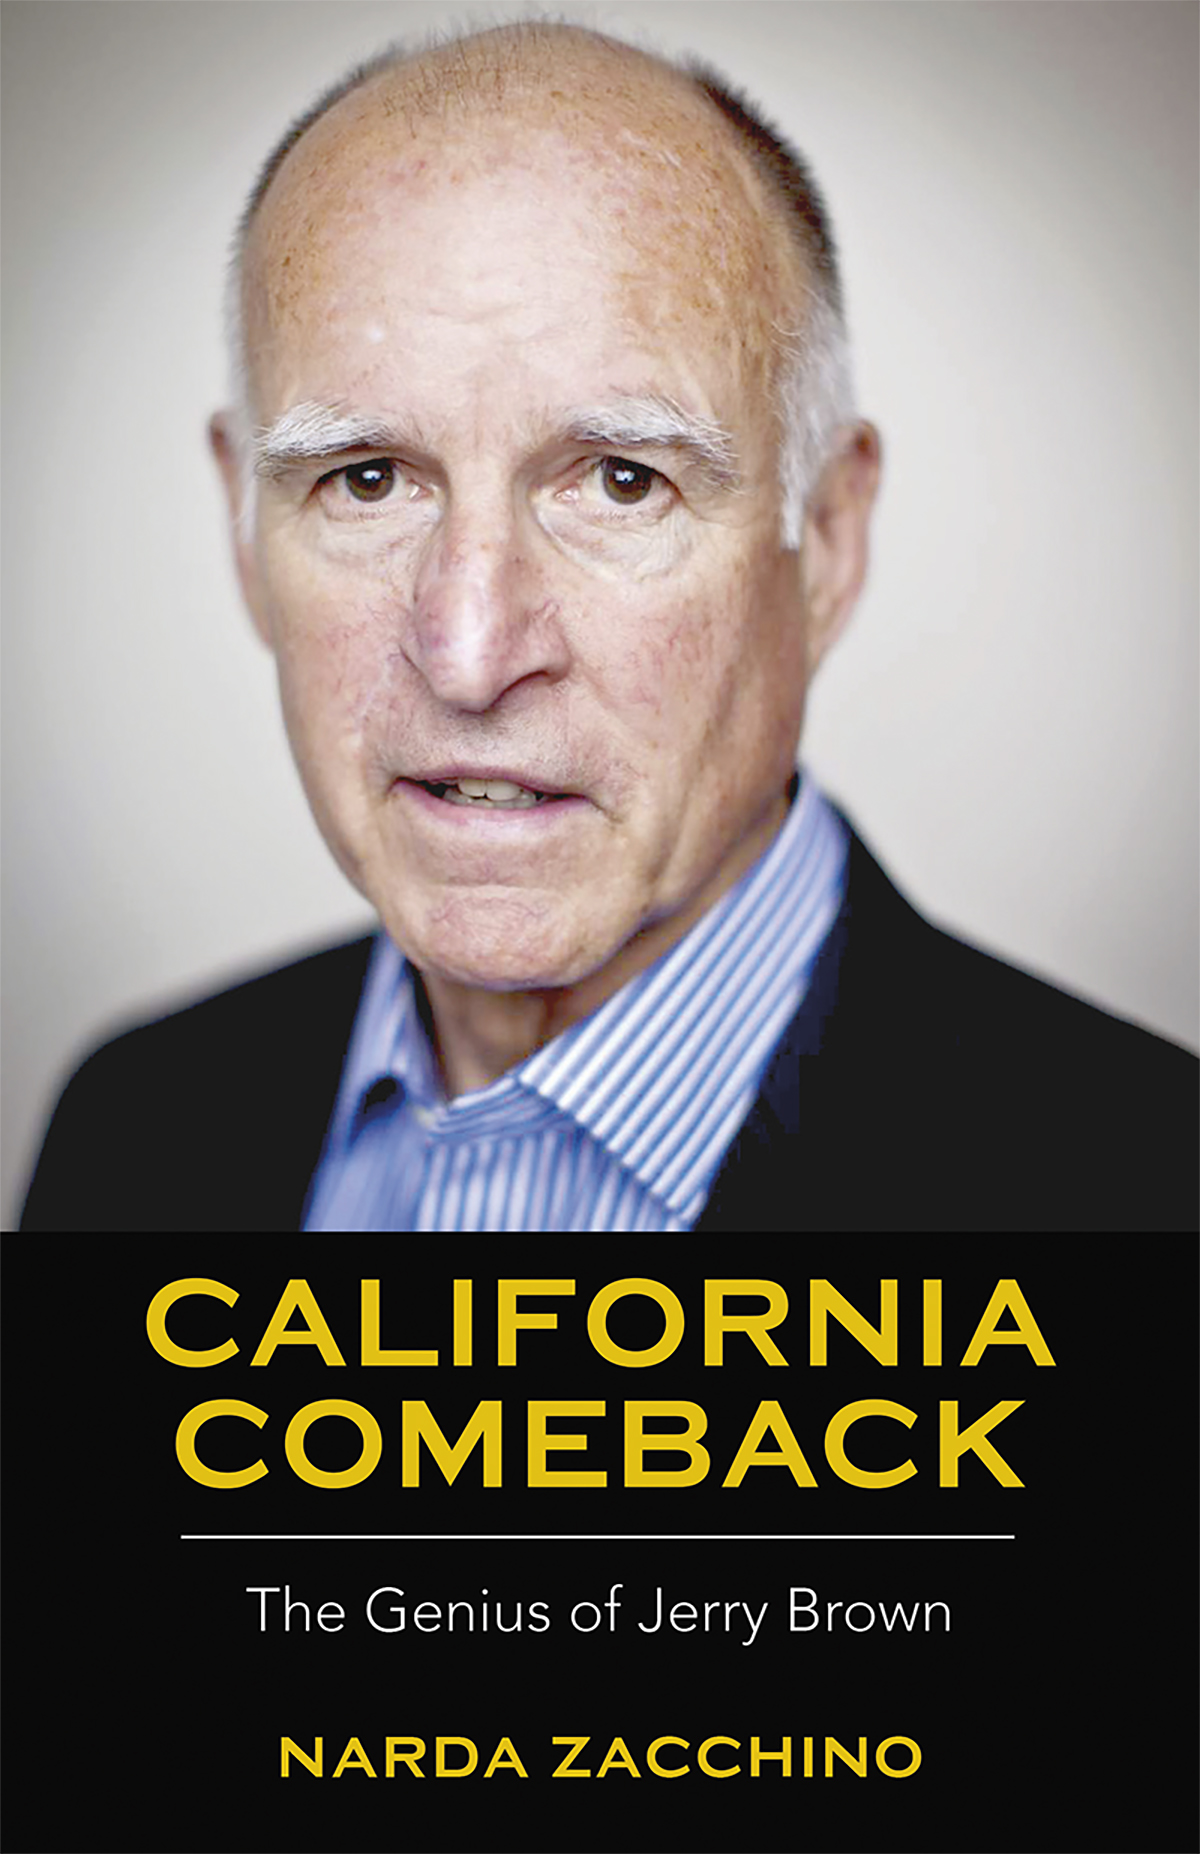 California Comeback: The Genius of Jerry Brown